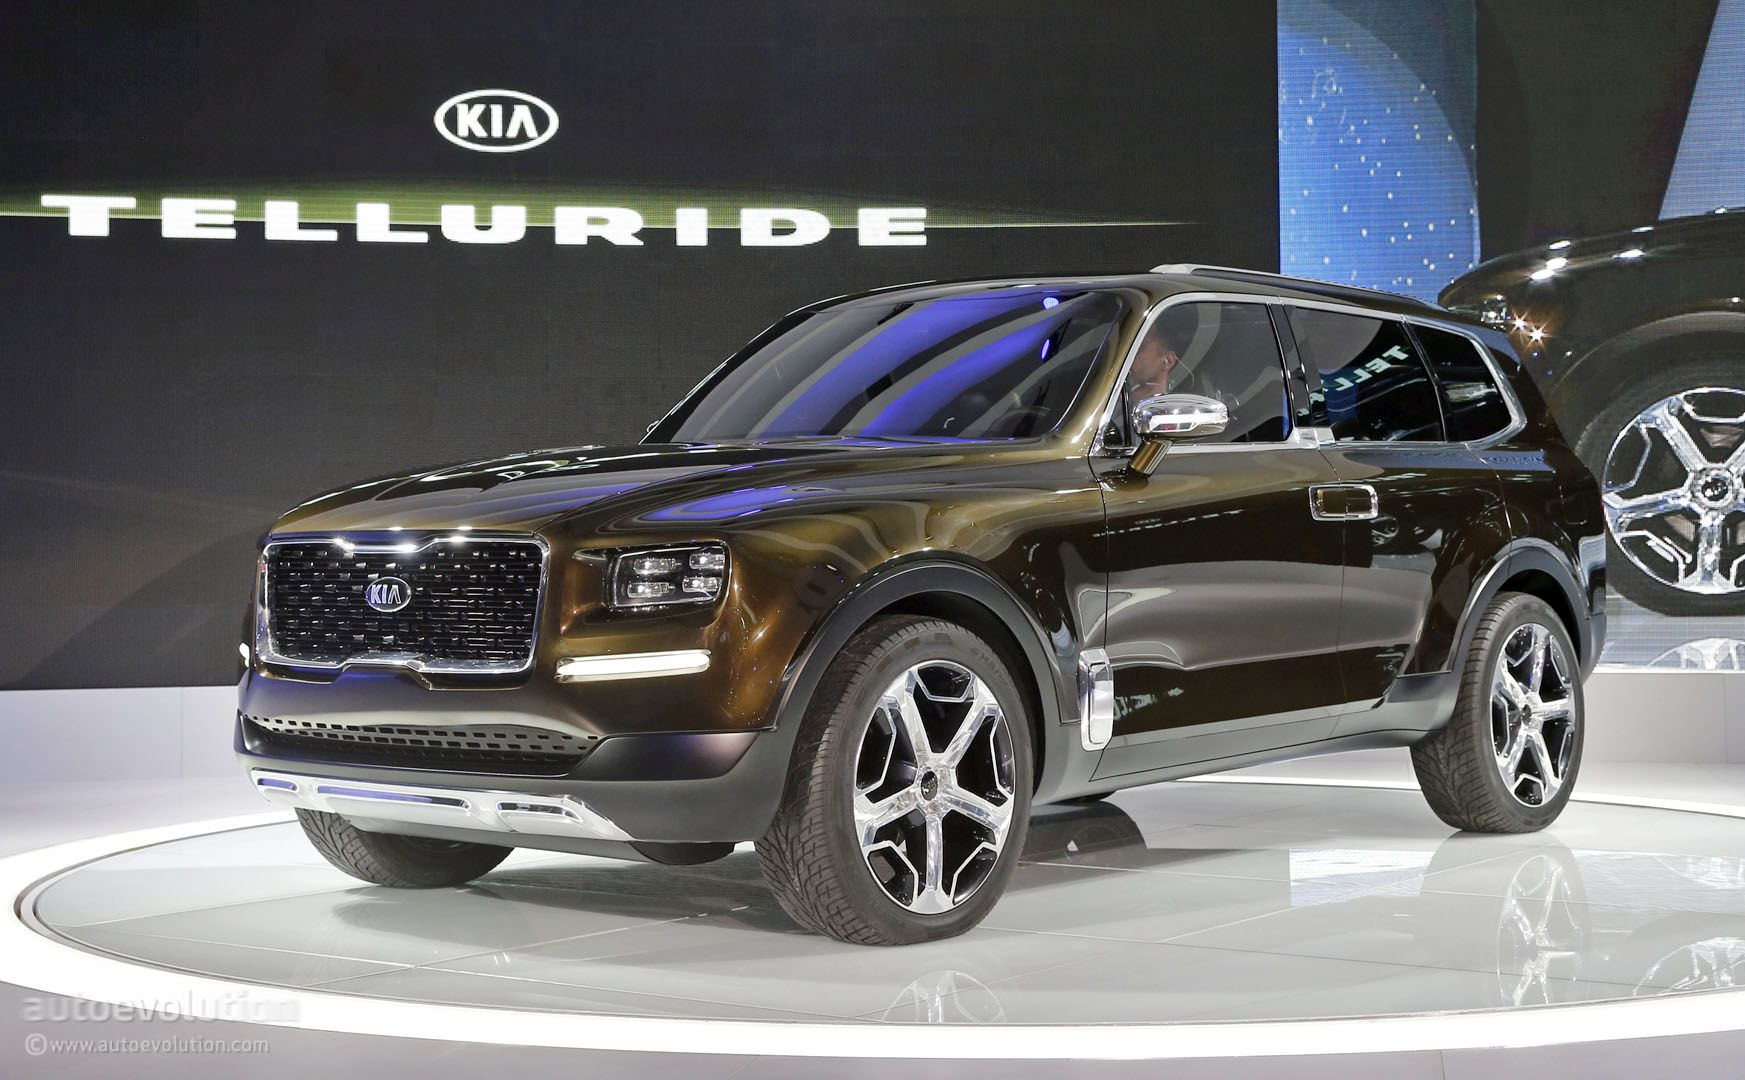 2019 Kia Telluride SUV Spied For The First Time, Looks Ready For Production - autoevolution